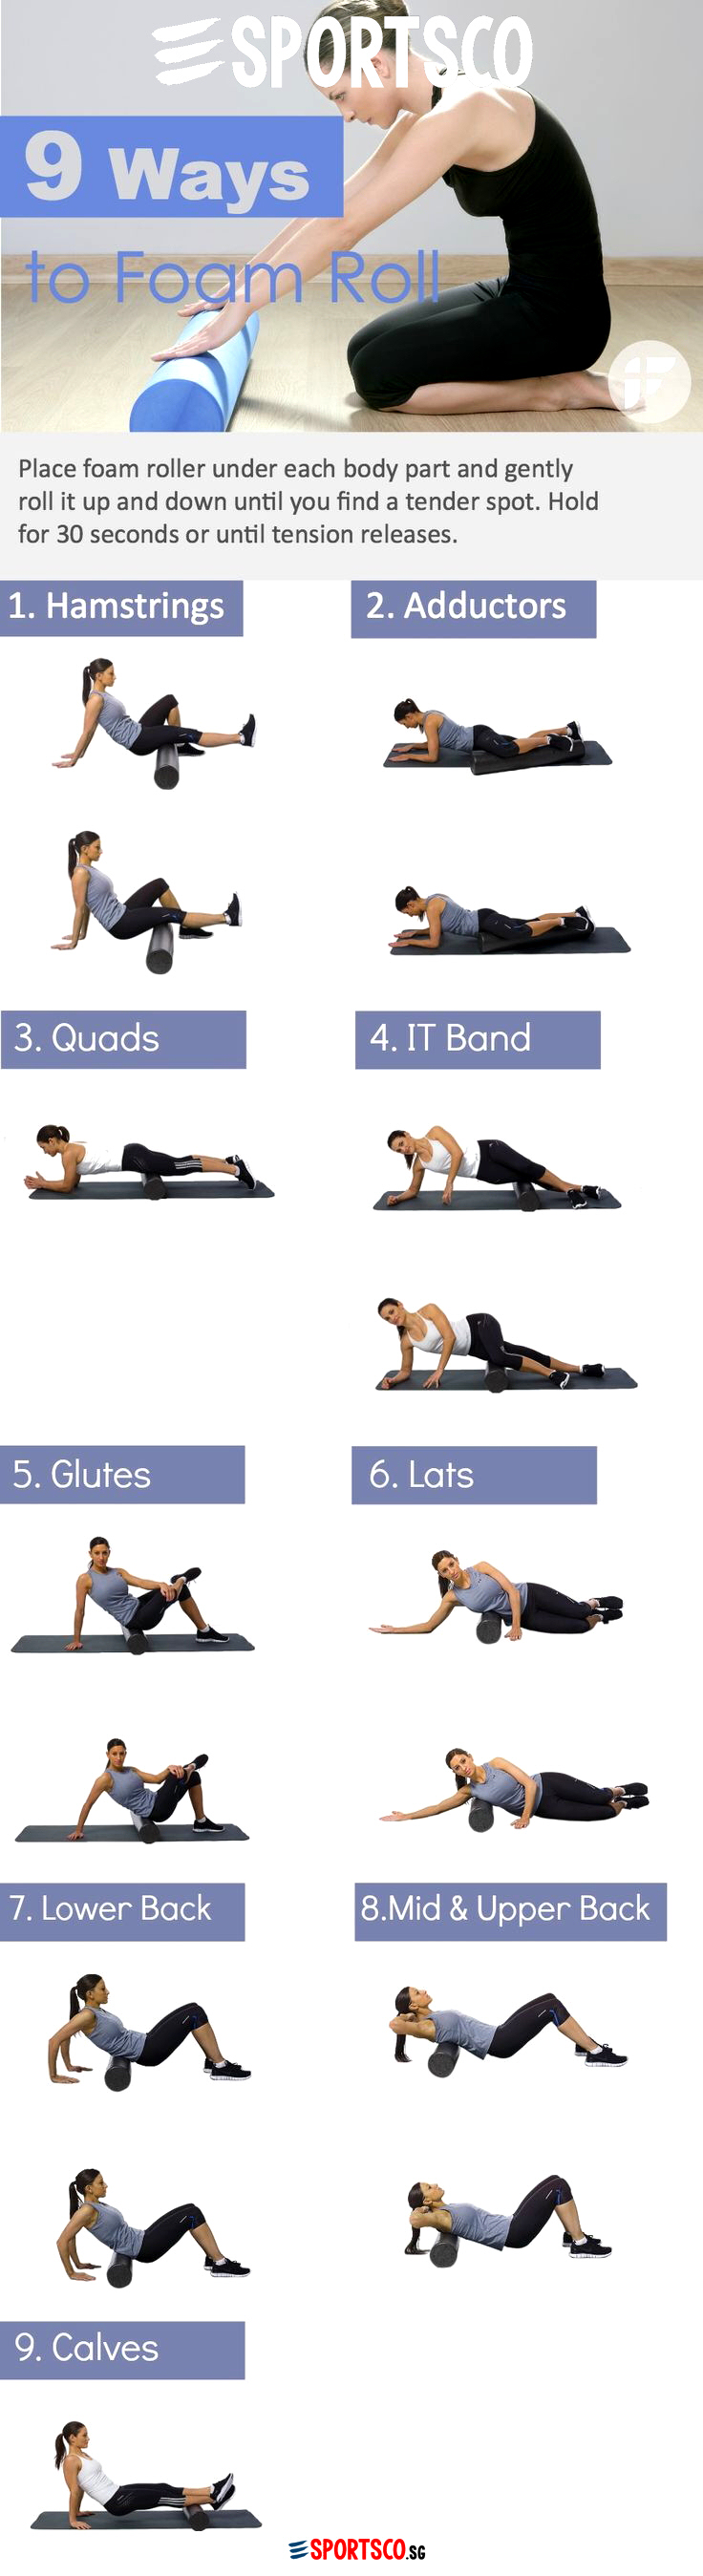 9 Ways to Use Foam Roller